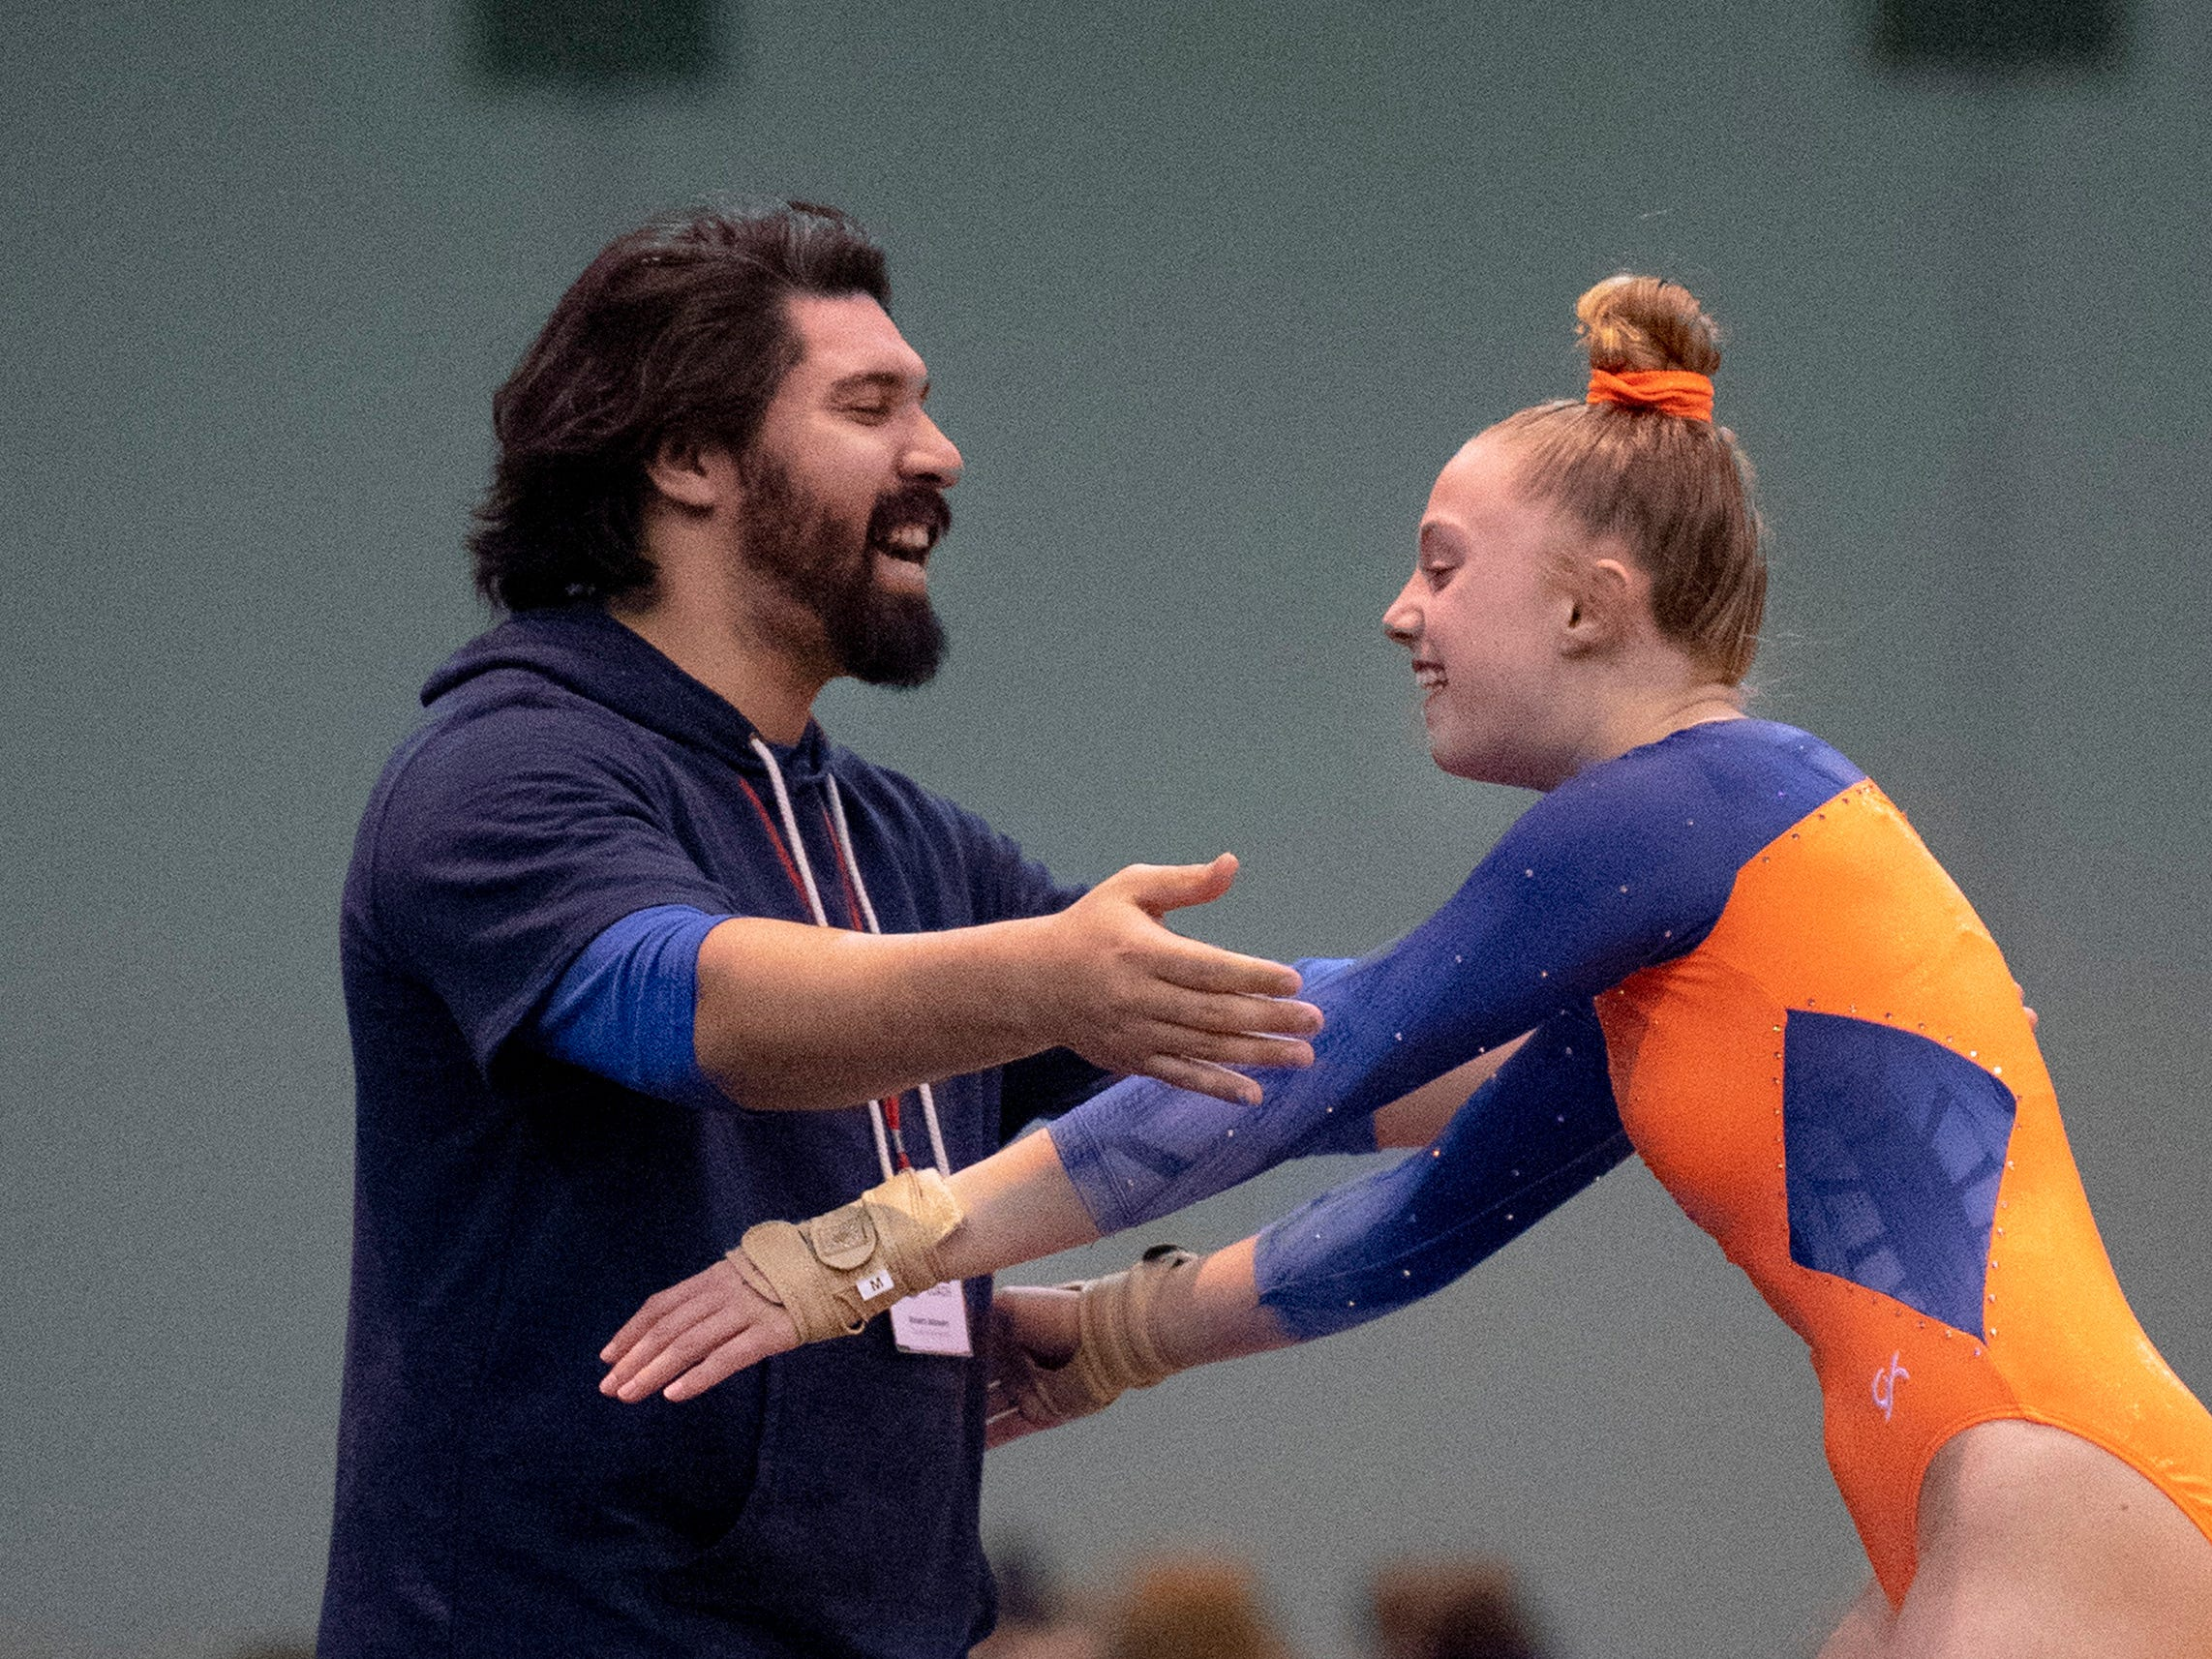 Sonshine Gymnastics coach Robert Johnson congratulates 14-year-old Sage Duggins of Holly Springs, N.C., after her final tumbling run at the VIP Classic at the Old National Events Plaza Friday afternoon.